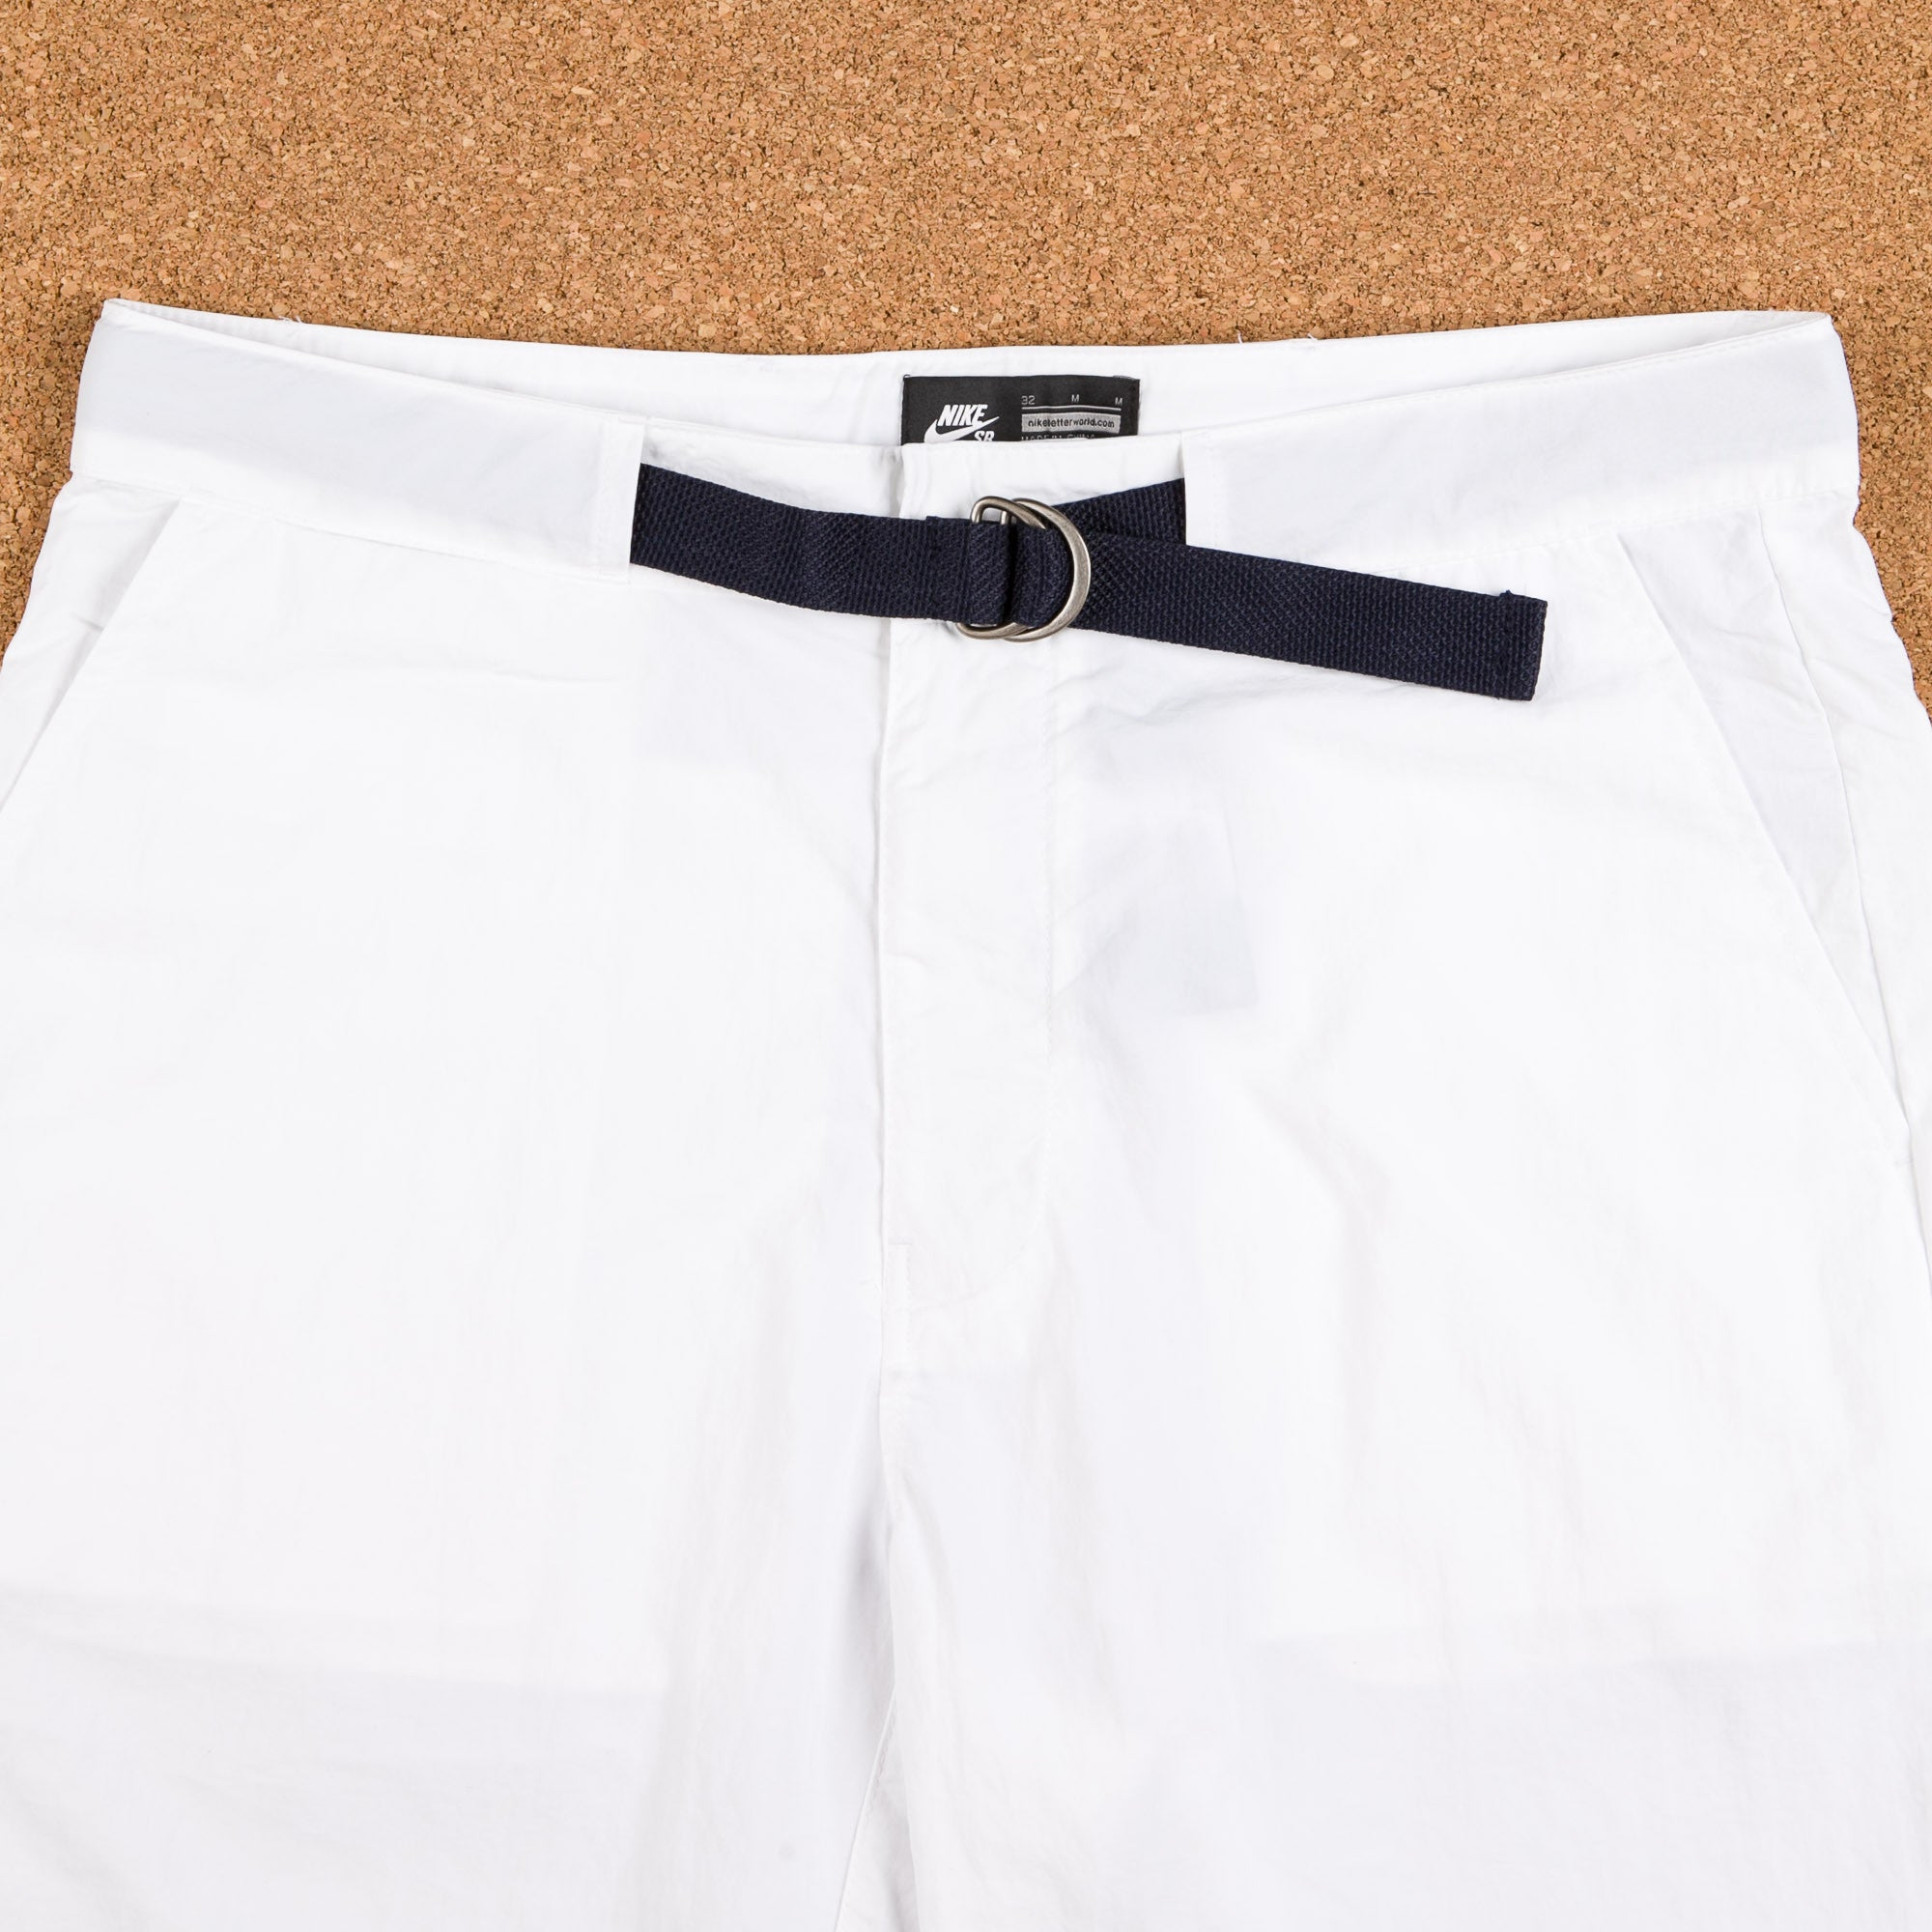 Nike SB x 917 Everett Country Club Shorts - White / Gorge Green